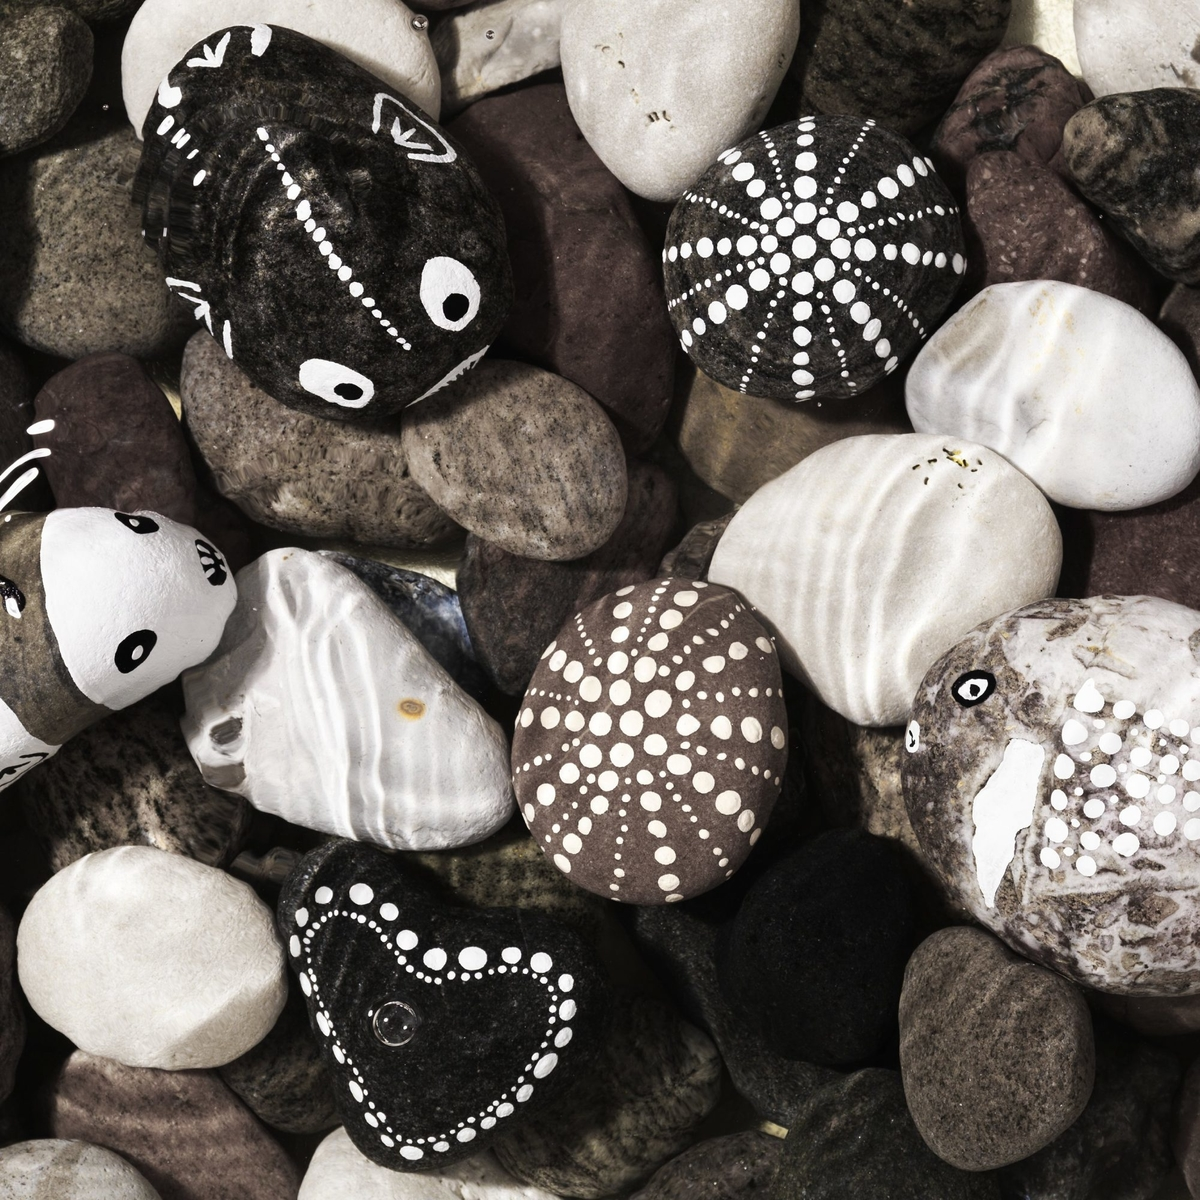 Paint designs on stones